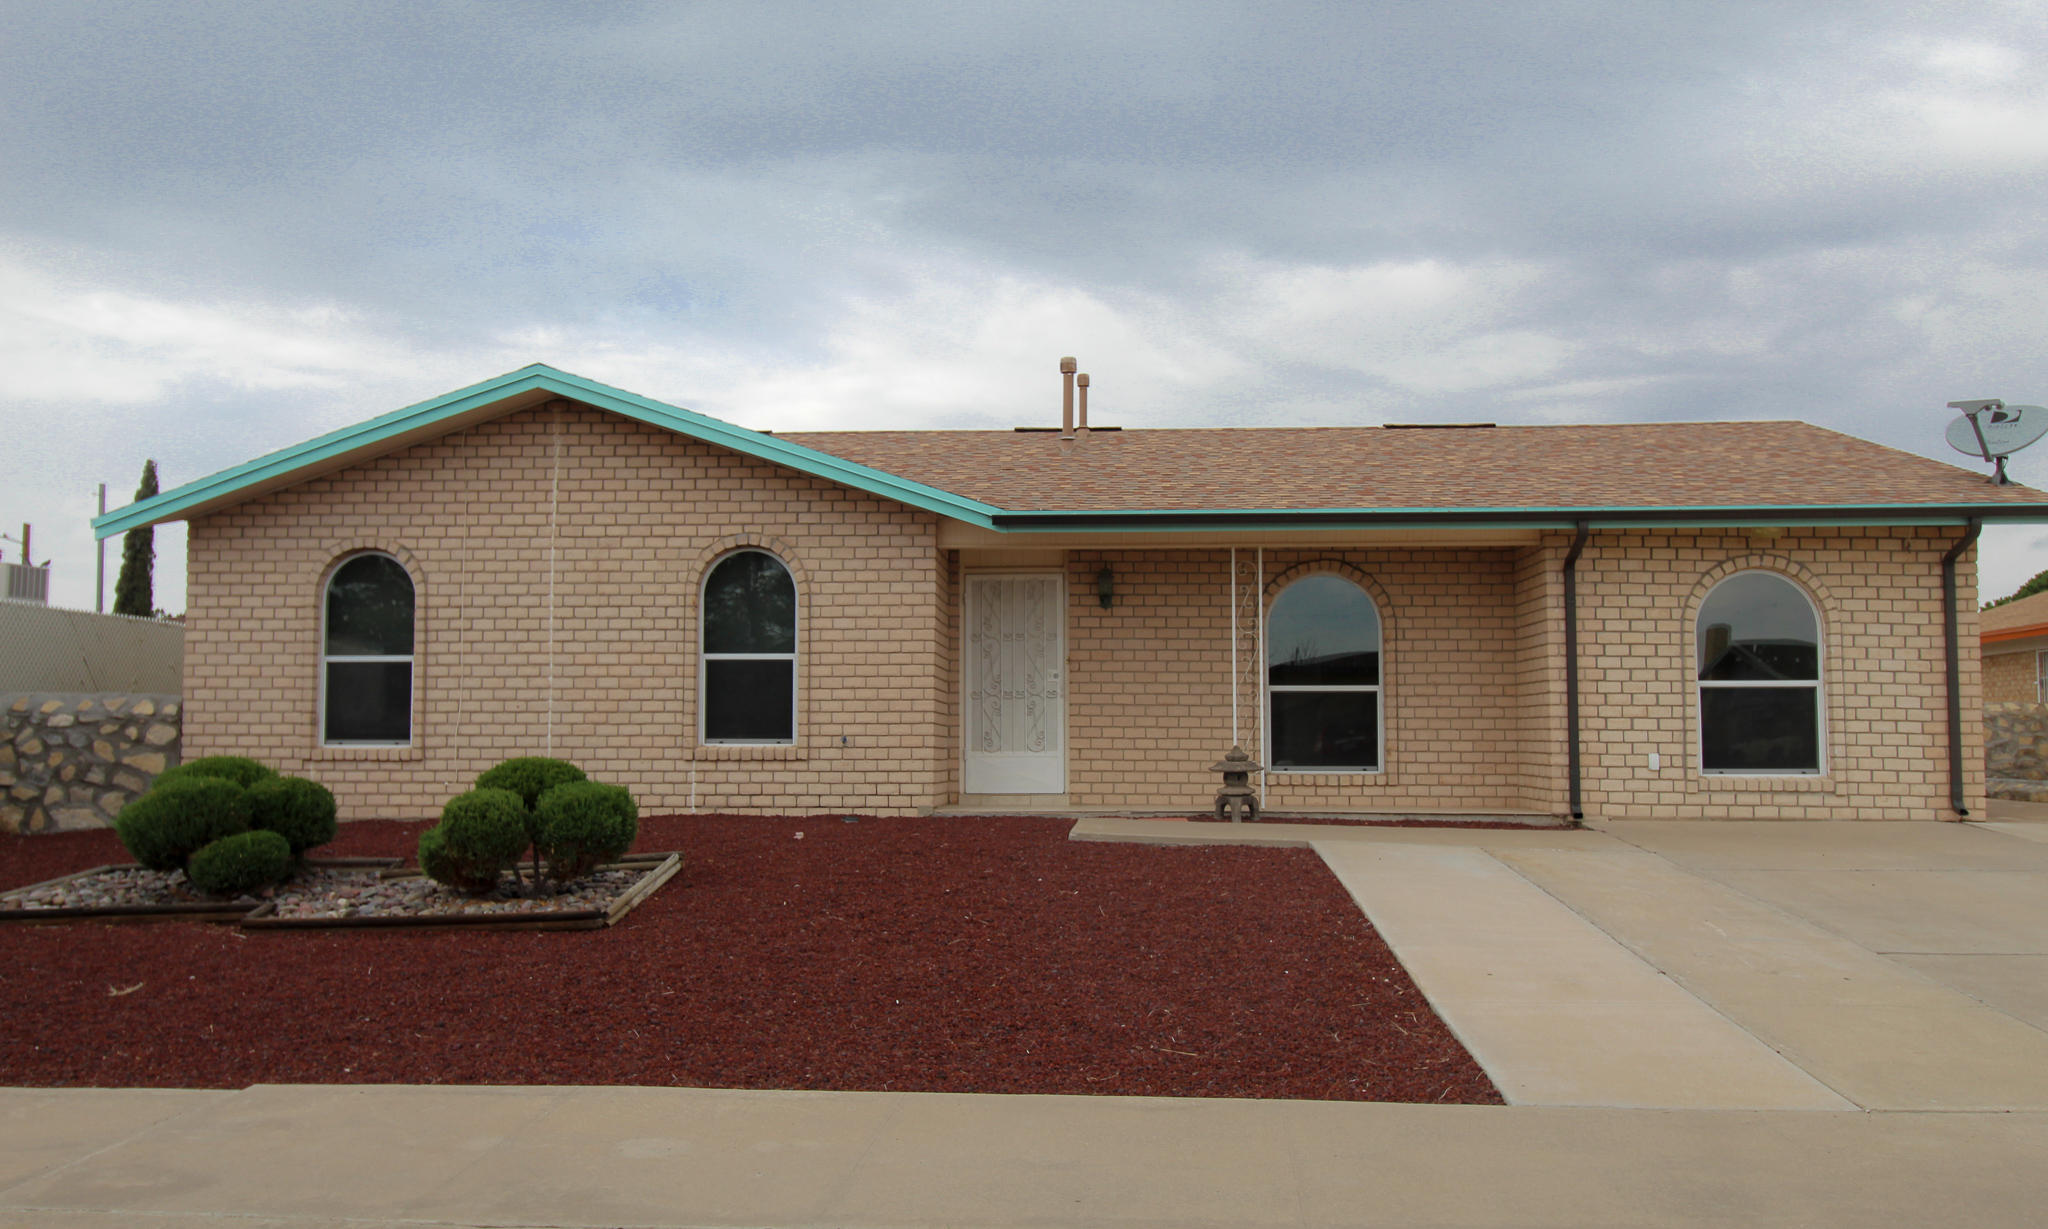 305 RONQUILLO Lane, El Paso, Texas 79907, 3 Bedrooms Bedrooms, ,3 BathroomsBathrooms,Residential Rental,For Rent,RONQUILLO,833711